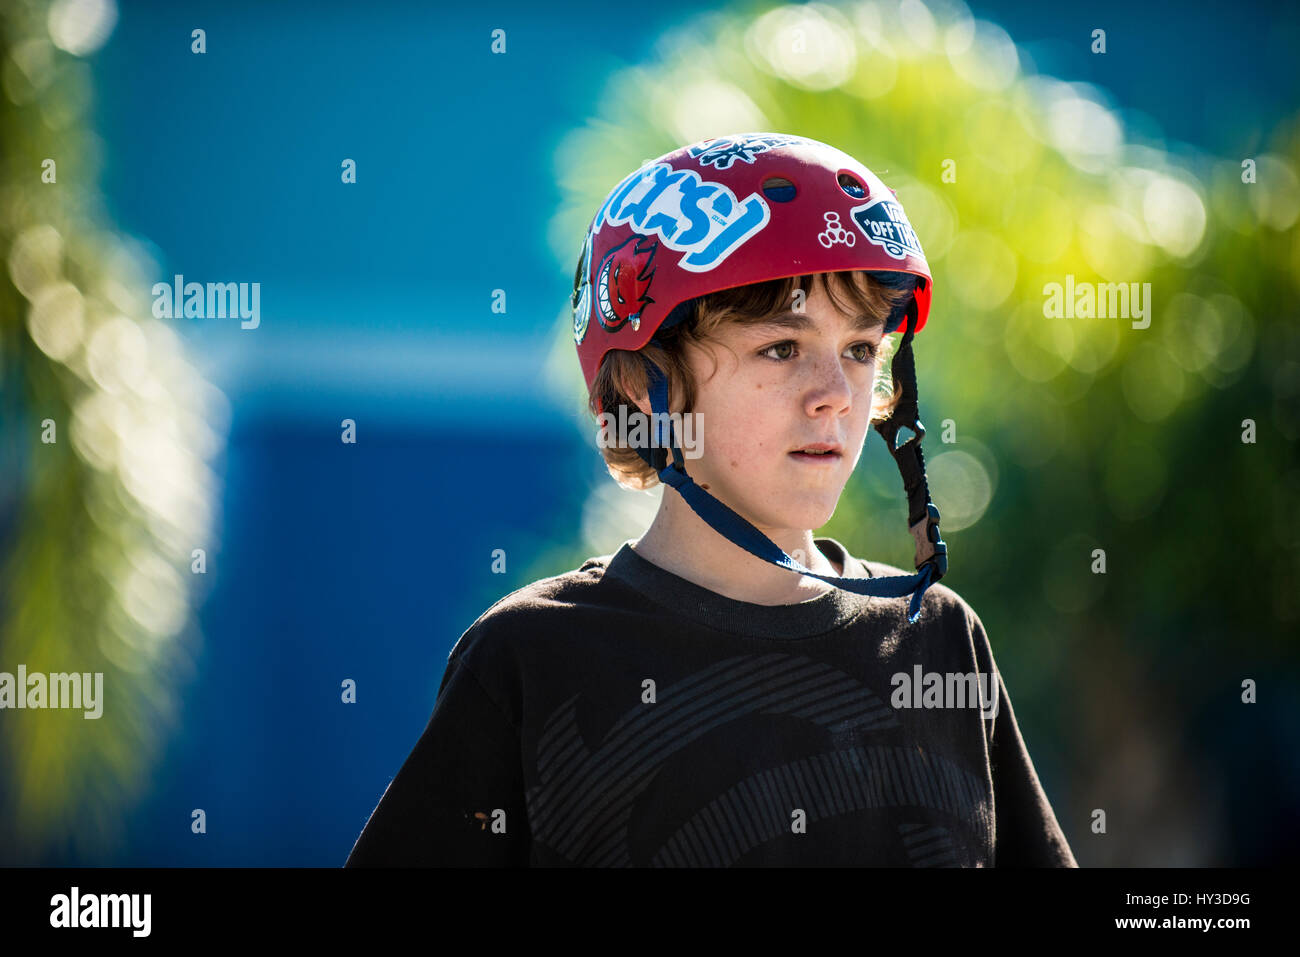 young boy on skate board closeup face - Stock Image